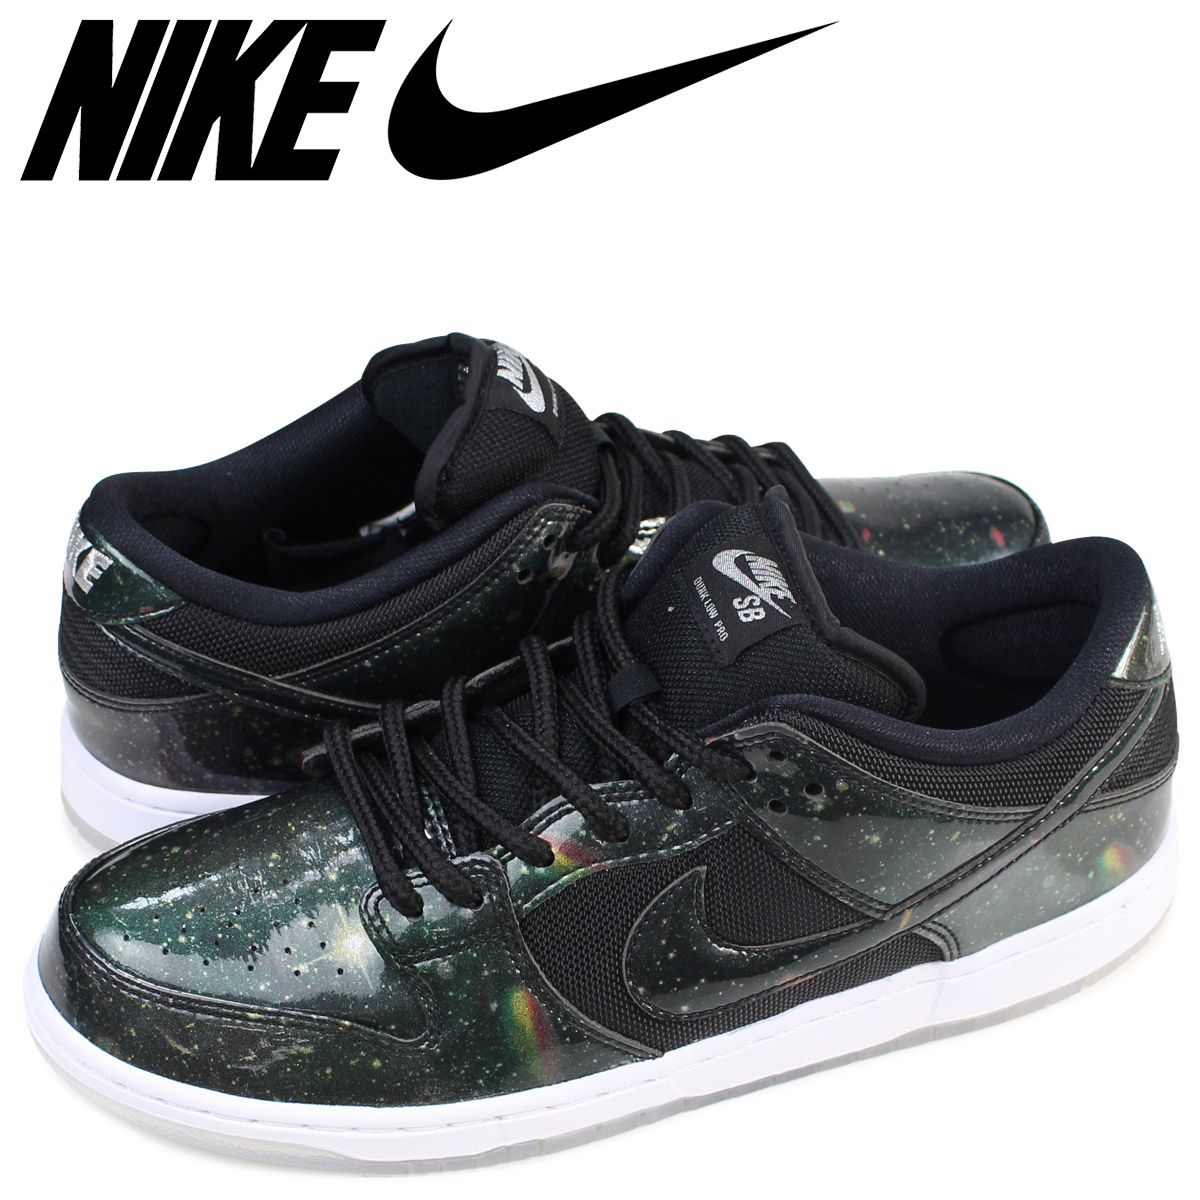 newest 1adad cfd05 Nike NIKE dunk SB sneakers DUNK LOW TRD QS GALAXY 883,232-001 men's shoes  black ...